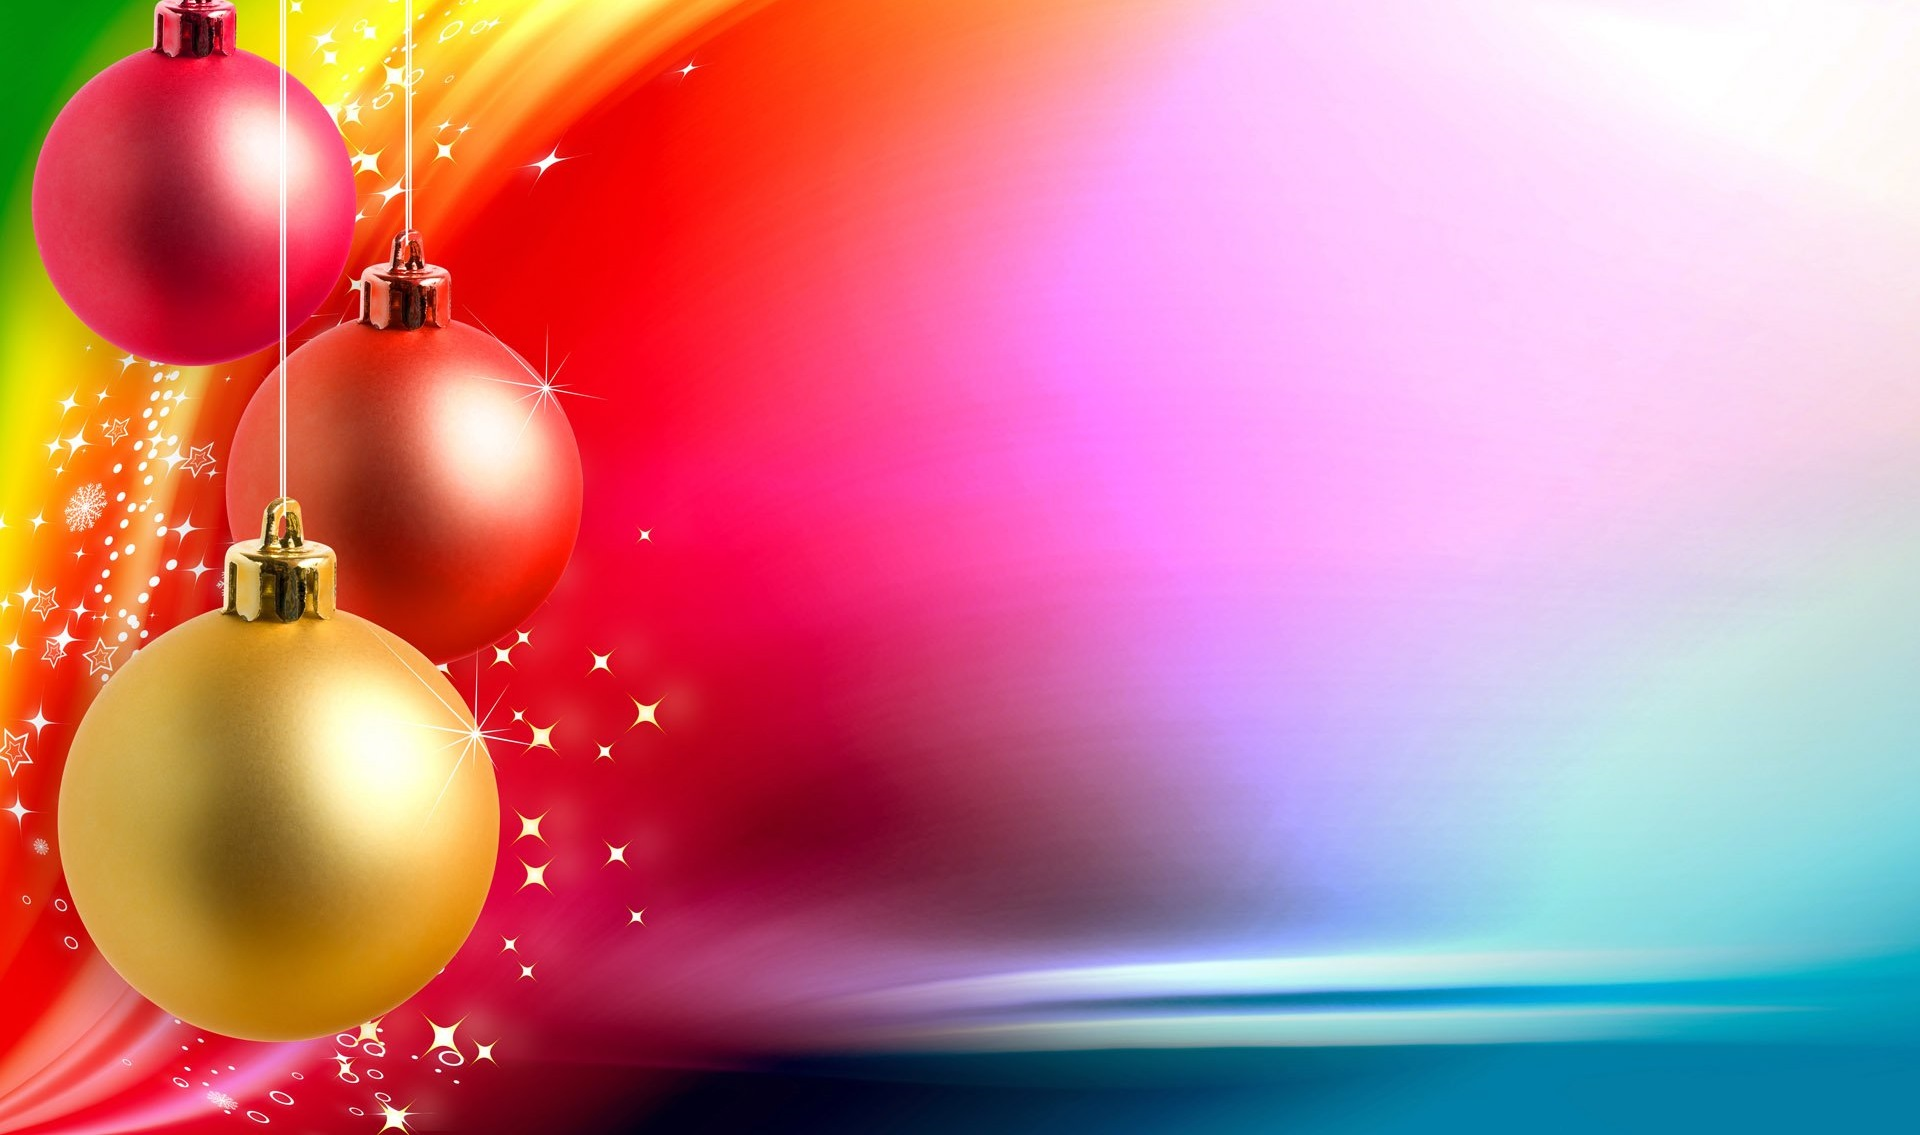 Christmas Wallpaper For Desktop 1920x1135